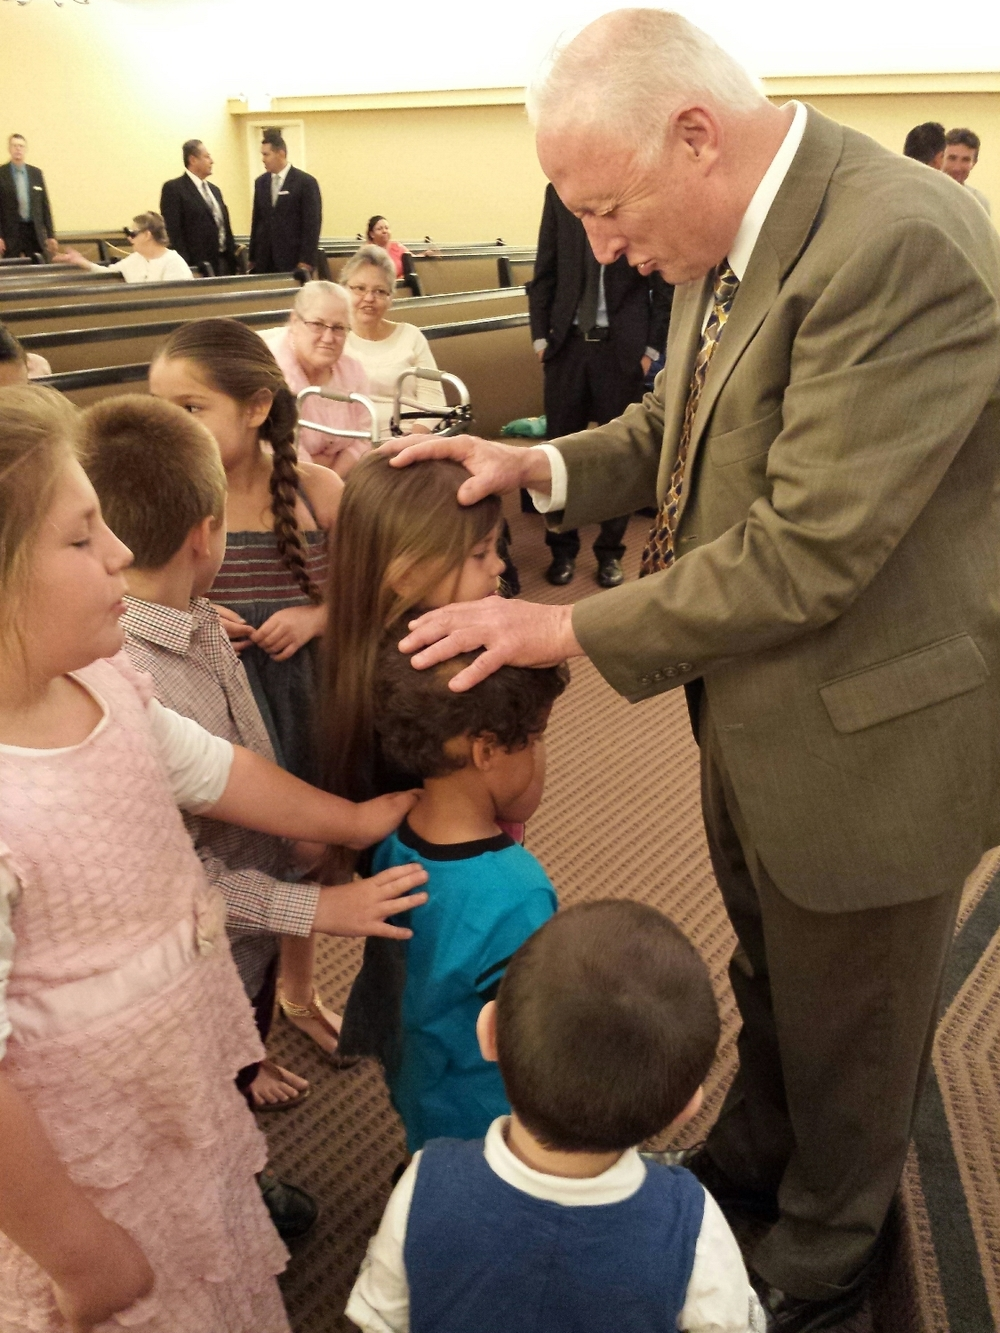 Pastor praying for the kids.